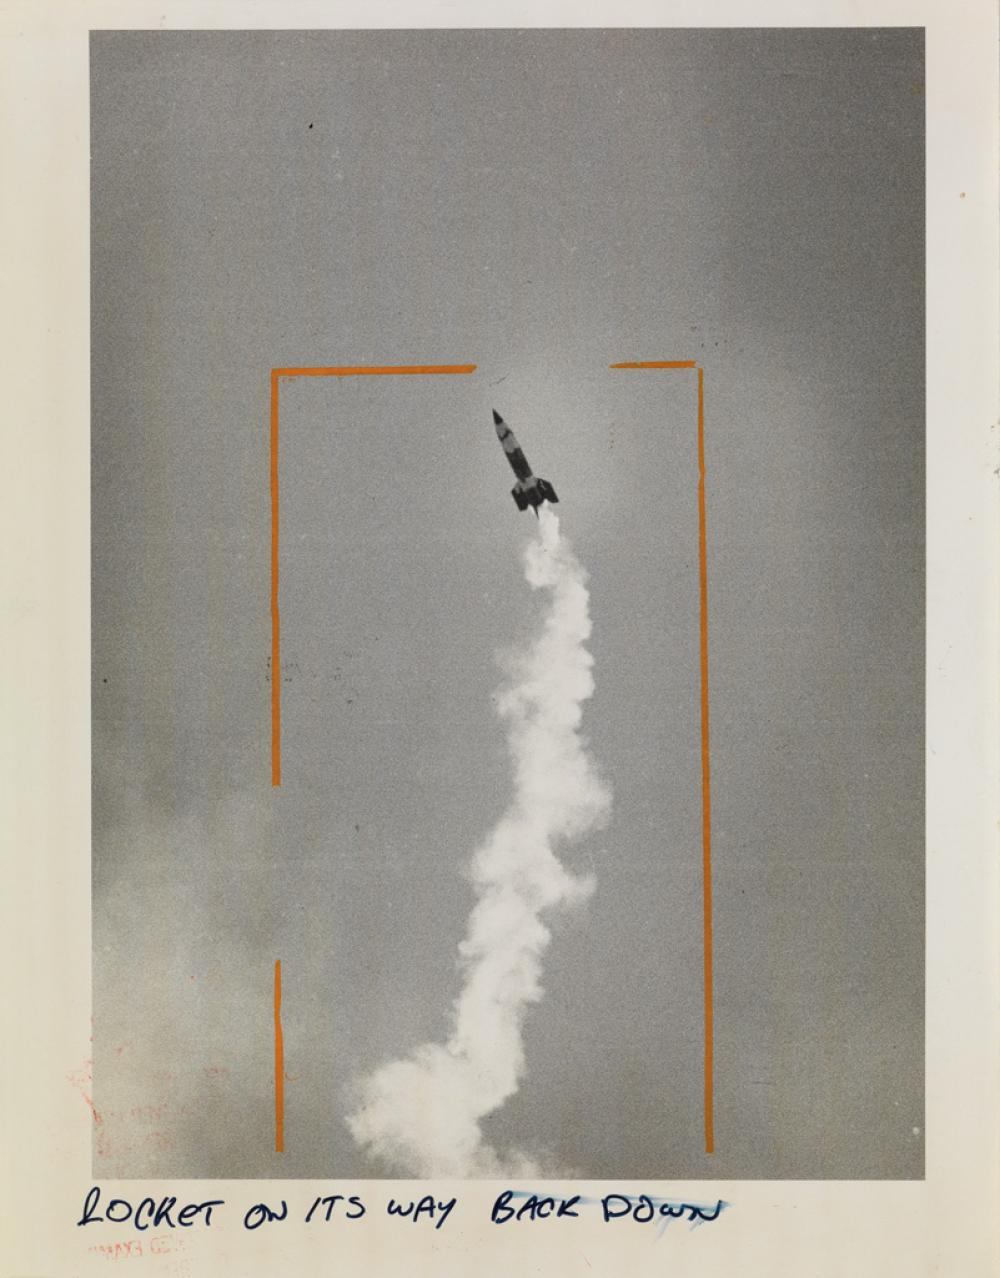 (MILITARY AND SPACE EXPLORATION) Group of 26 large-format photographs depicting early rocket and space capsule launches.